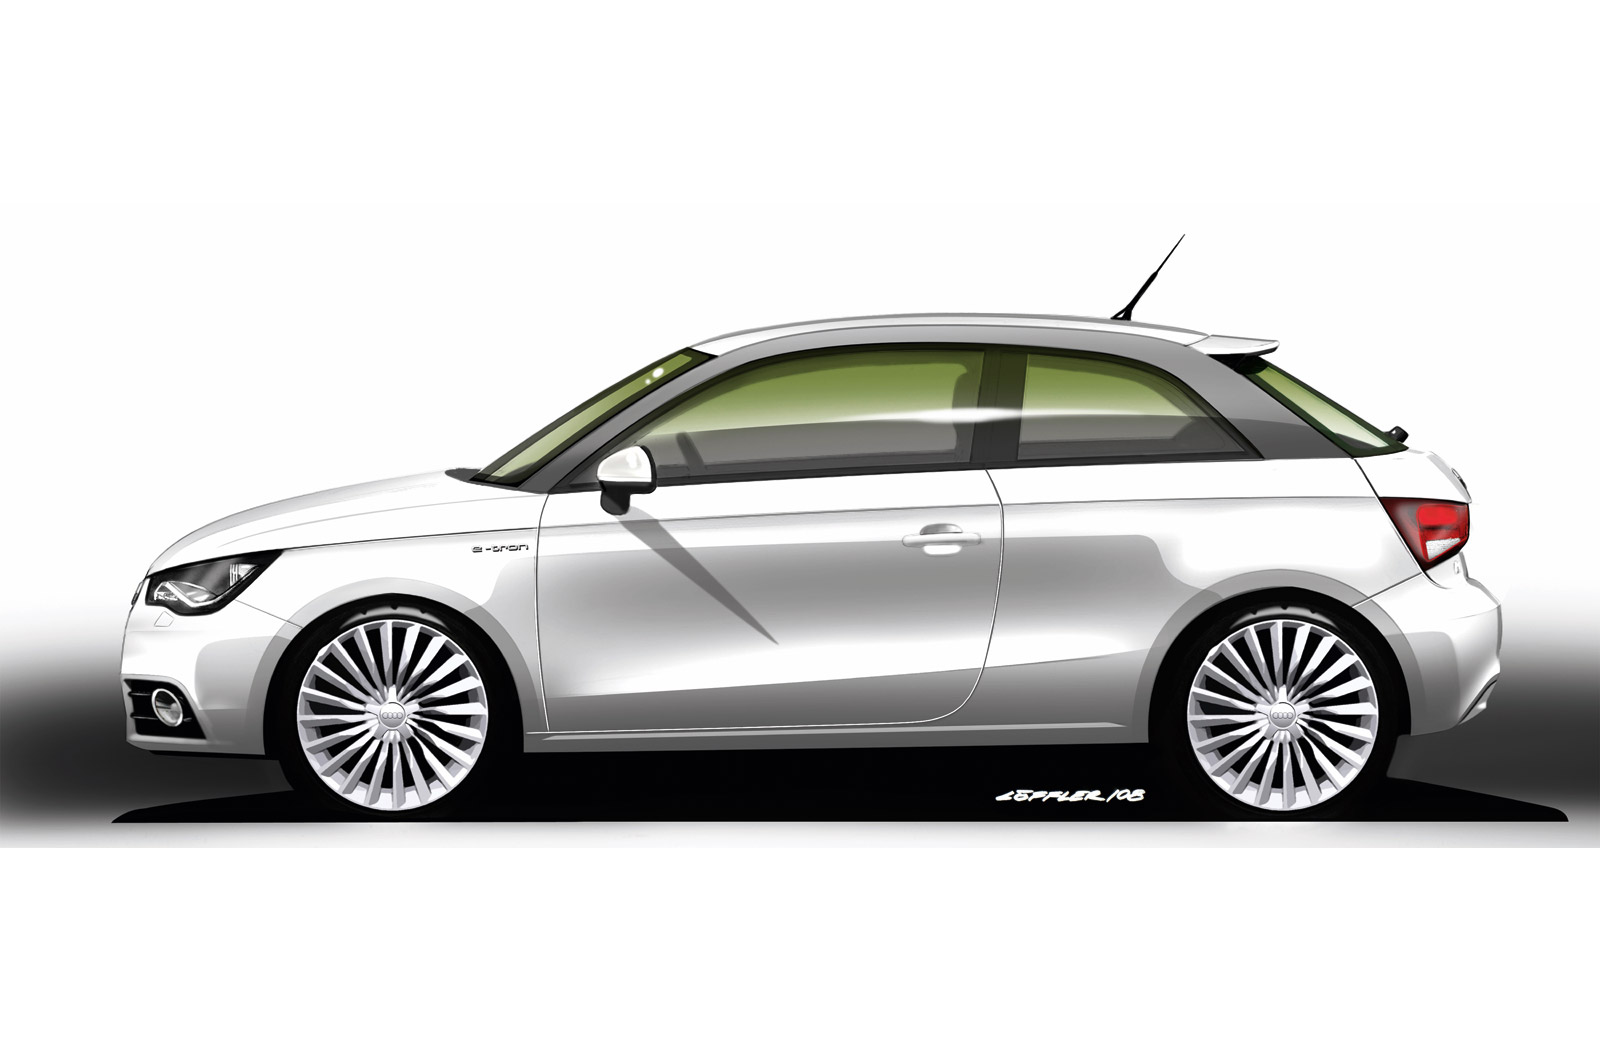 audi a1 e tron design sketch car body design. Black Bedroom Furniture Sets. Home Design Ideas